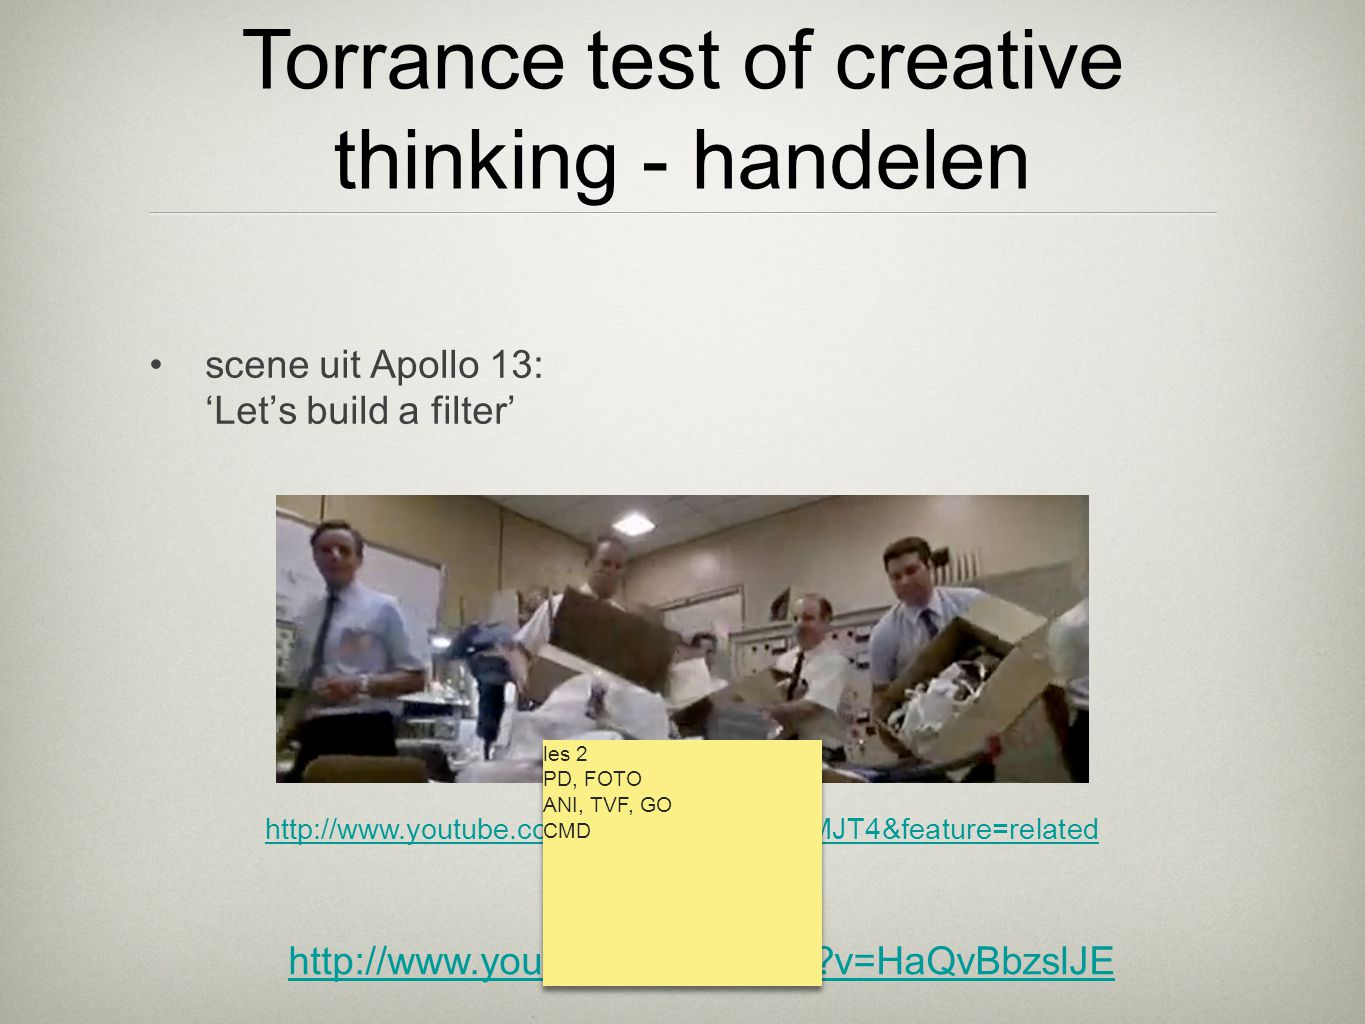 •scene uit Apollo 13: 'Let's build a filter' http://www.youtube.com/watch?v=Z3csfLkMJT4&feature=related Torrance test of creative thinking - handelen